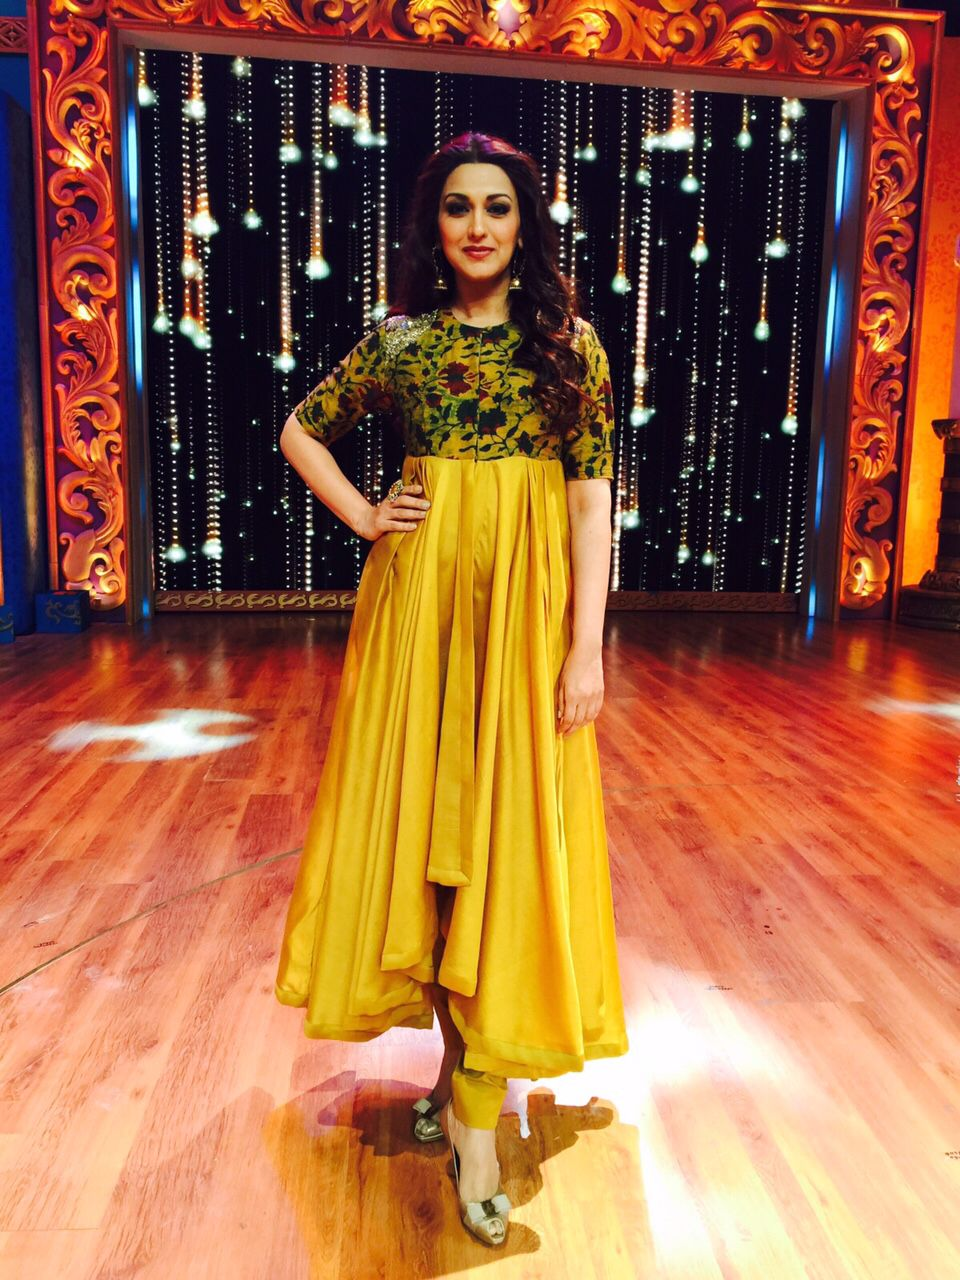 Sonali Bendre Behl as a judge of the reality show 'India's